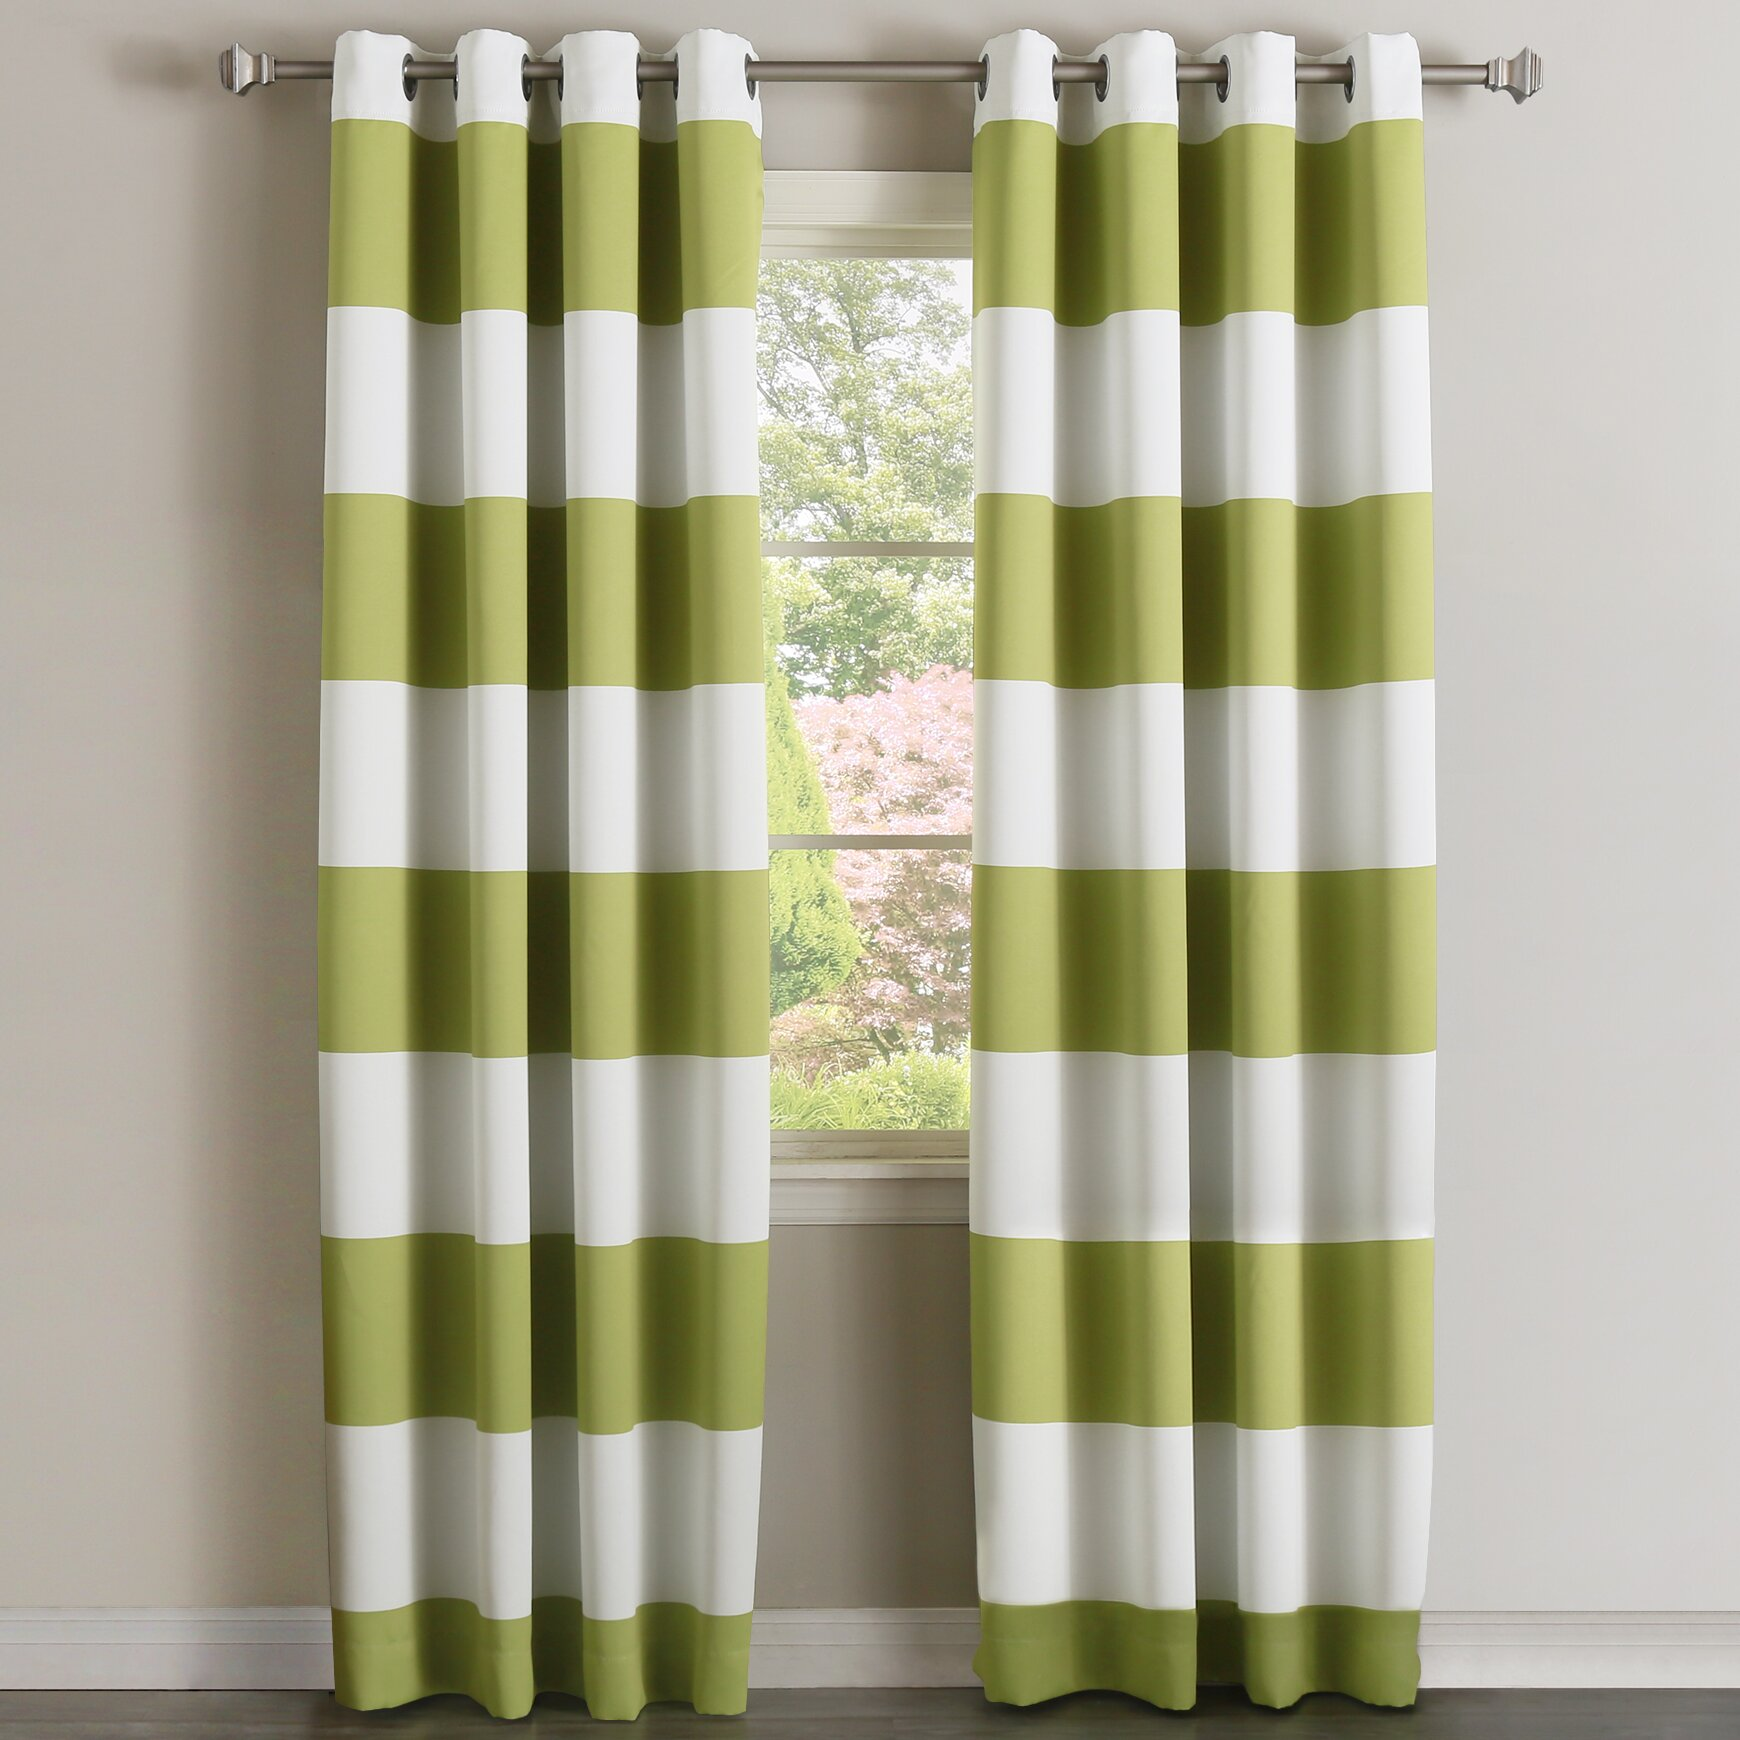 Bed Bath And Beyond Living Room Curtains Bed Bath and Beyond Dust